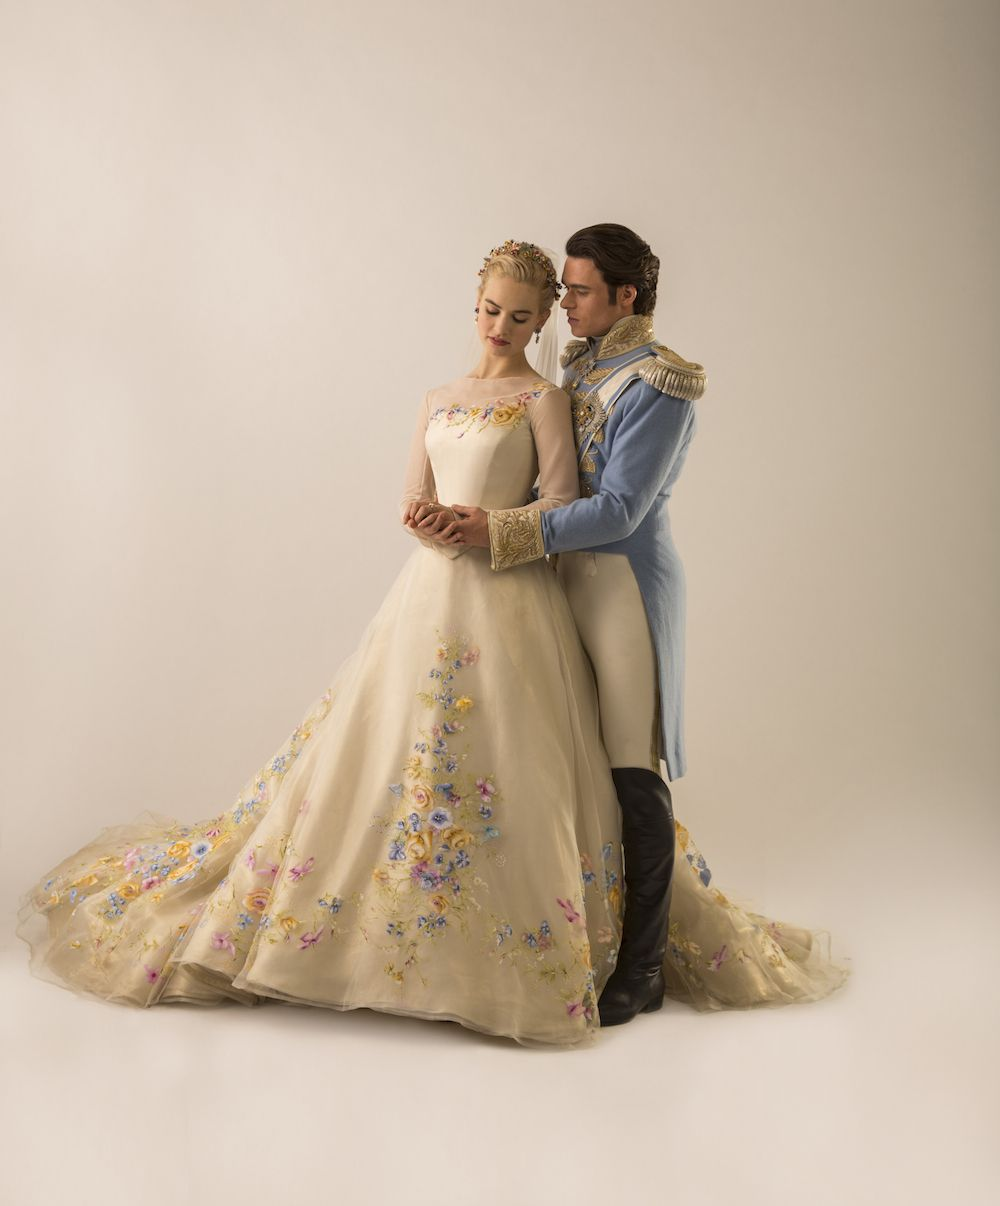 Cinderella Style Wedding Gowns: We're Swooning Over This Cinderella-Inspired Wedding Dress